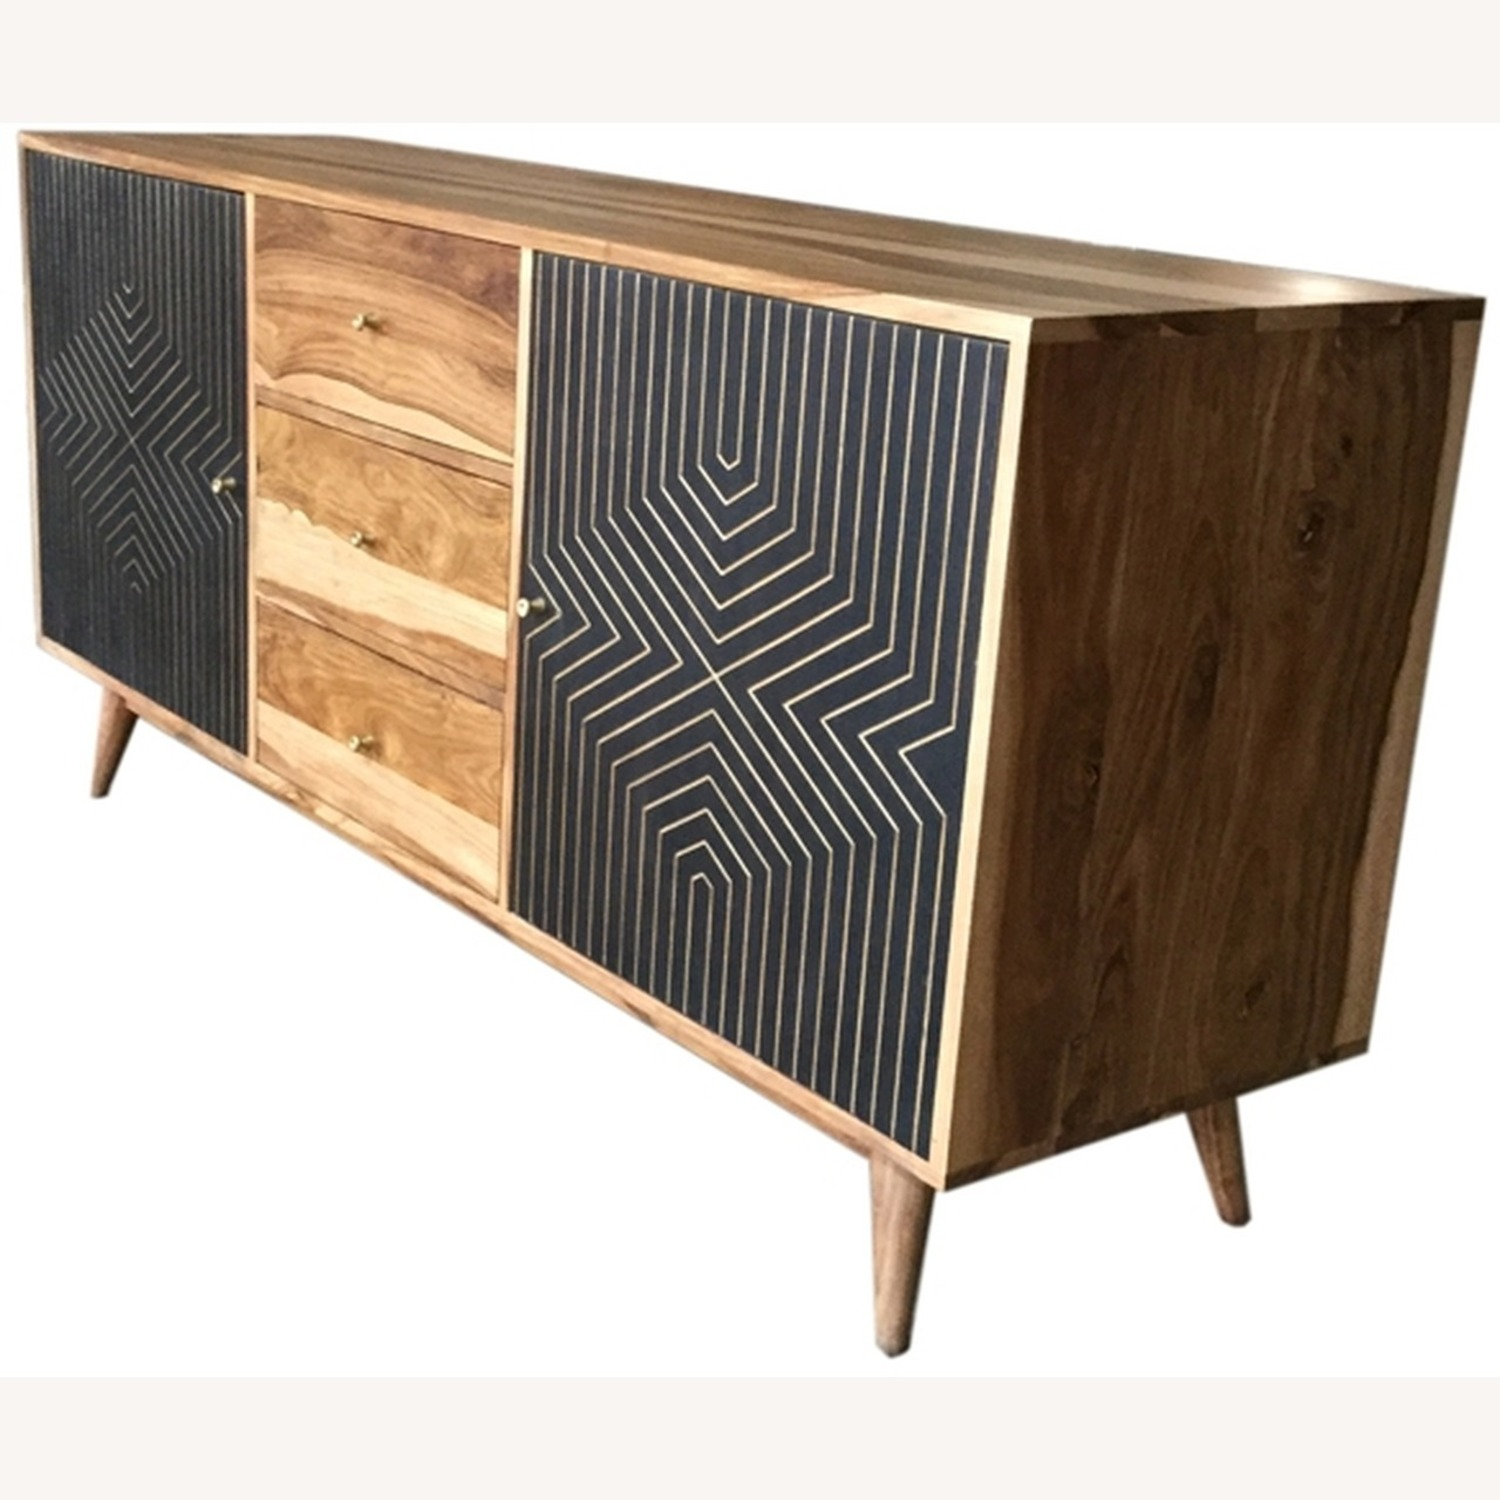 Server In Natural Finish W/ Art Deco Inspired - image-1